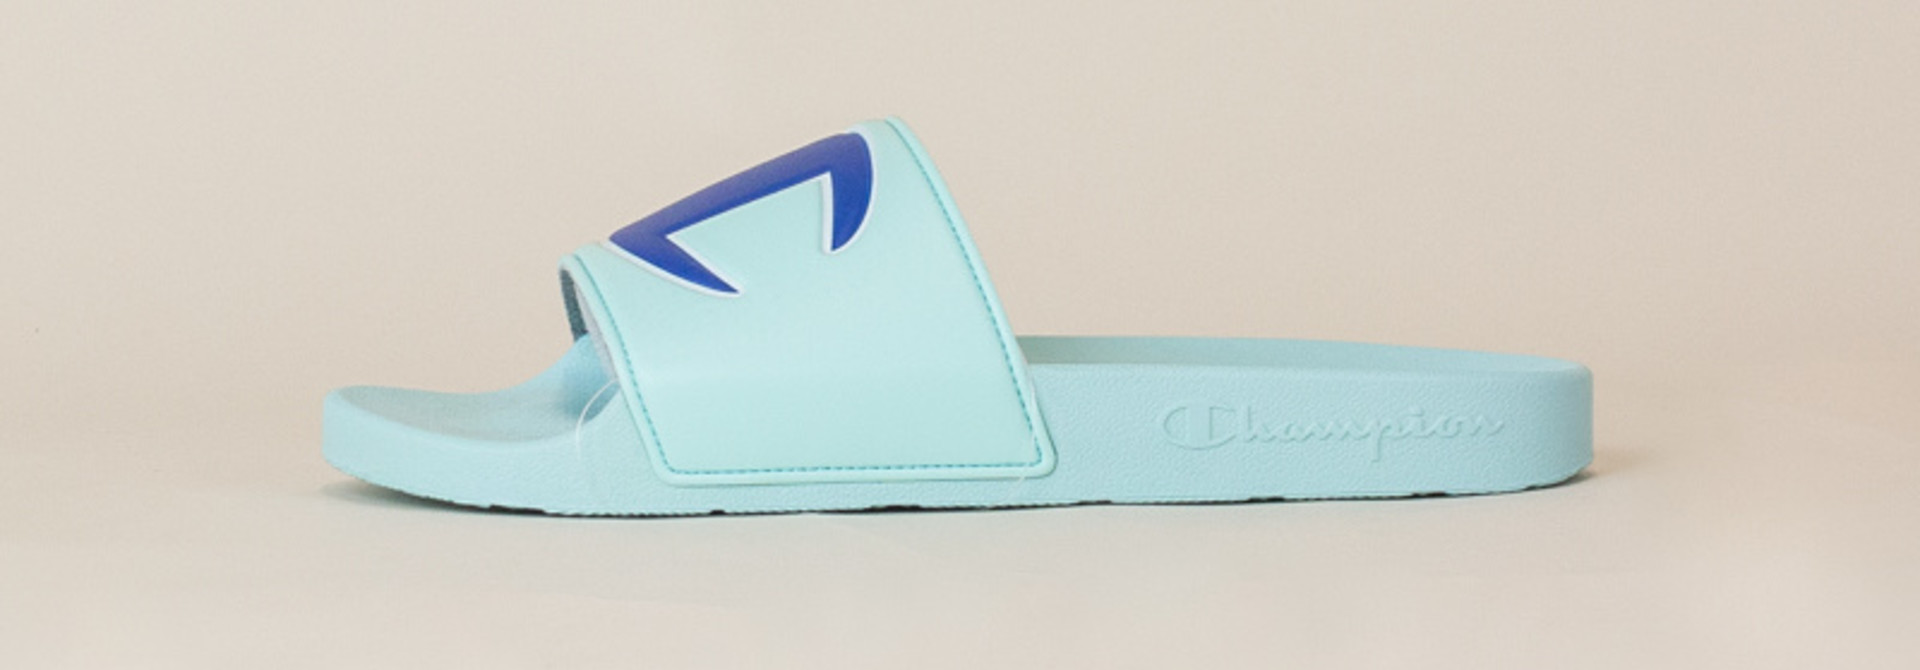 Champion IPO Slide Sandals - Waterfall